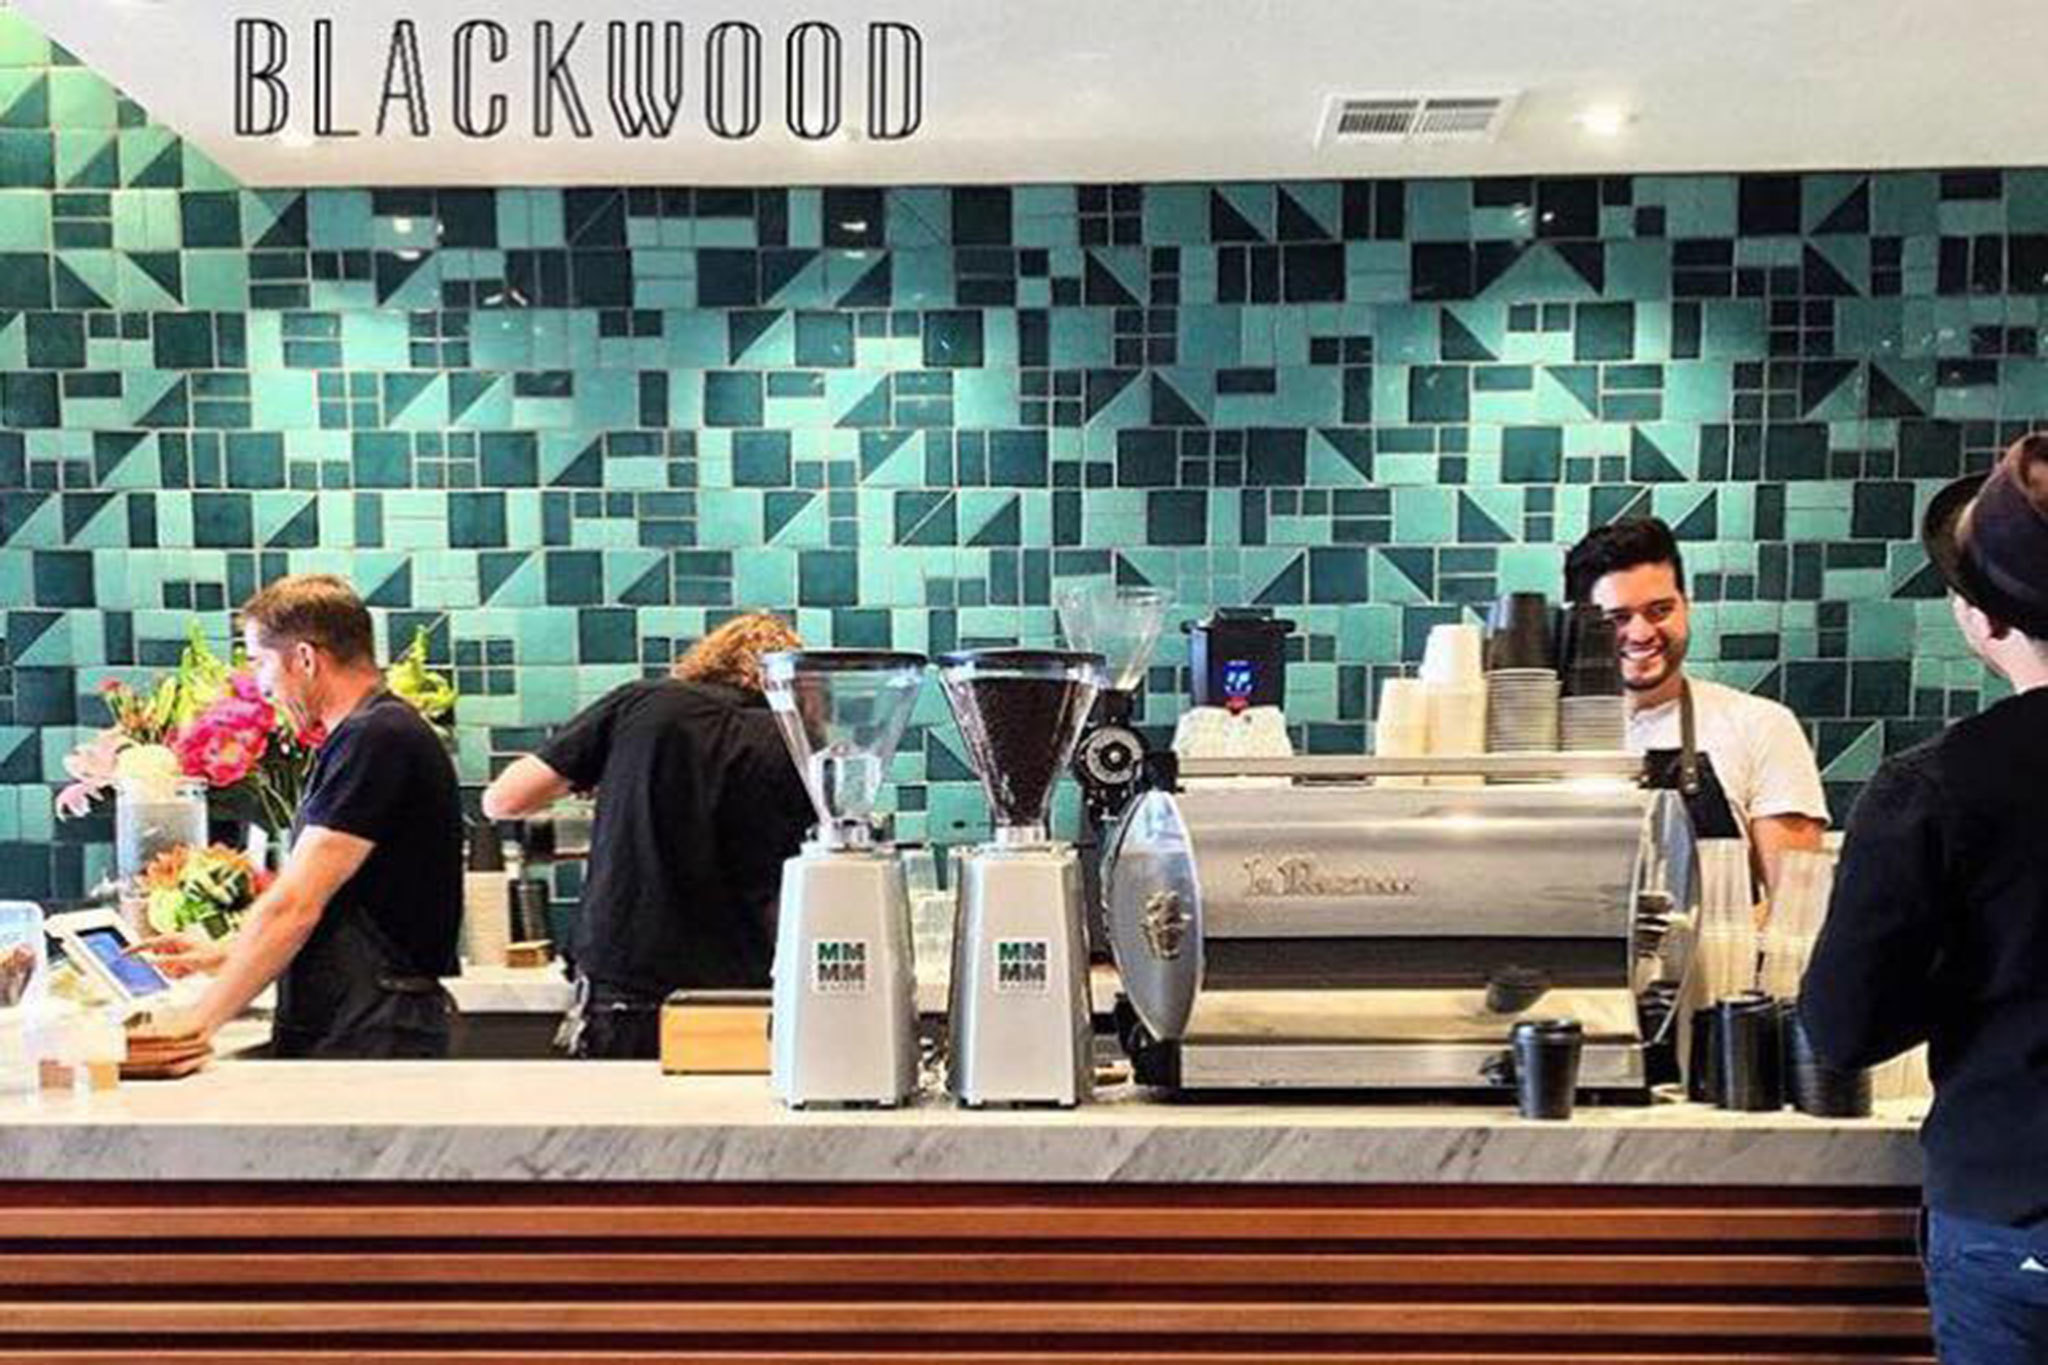 Blackwood Coffee Bar